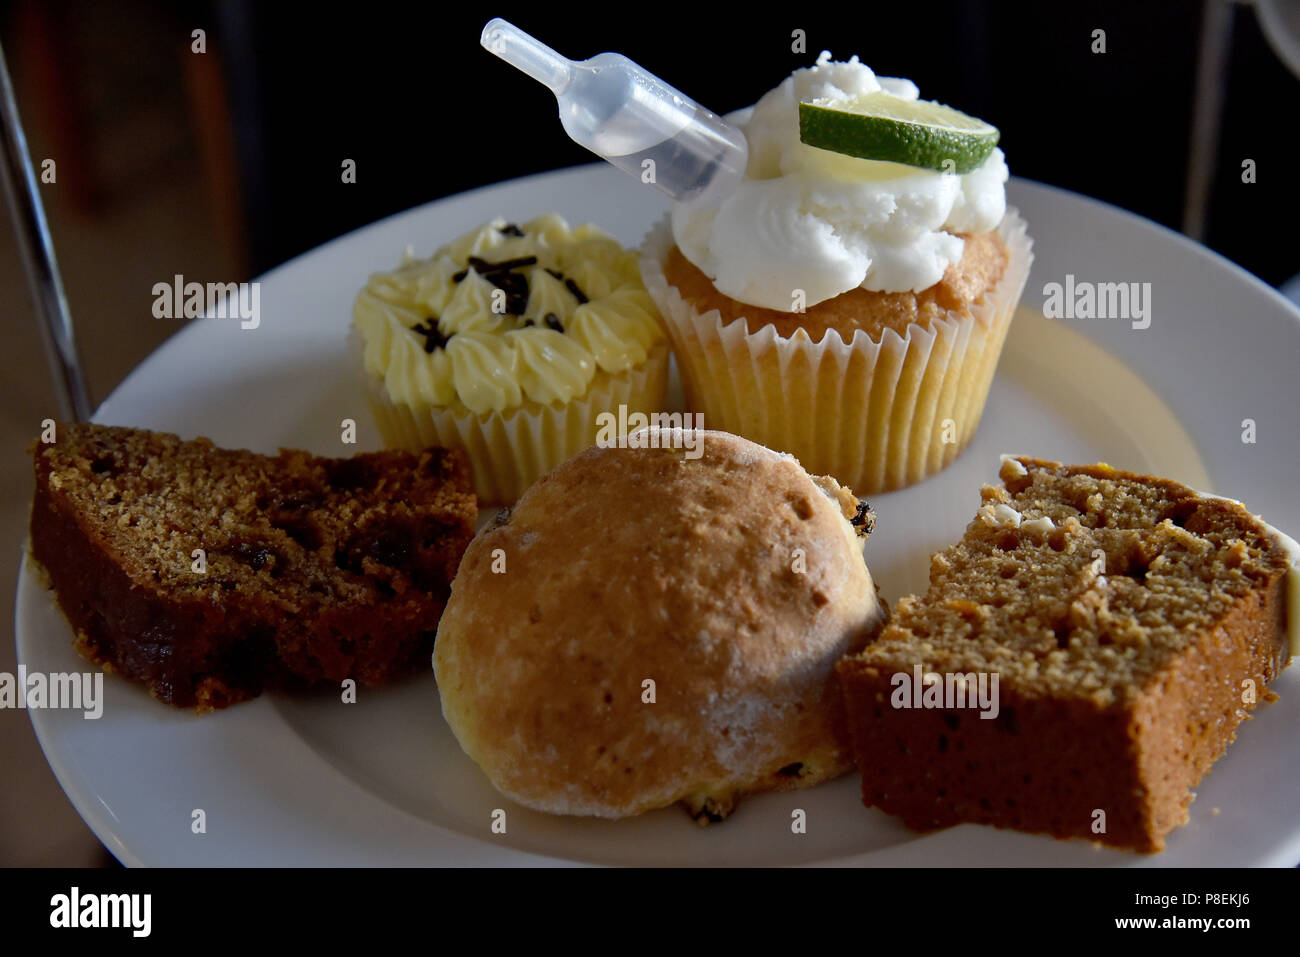 Picture shows a cake stand containing fancy cakes including a cup cake, a scone, date and walnut and a slice of coffee cake - Stock Image